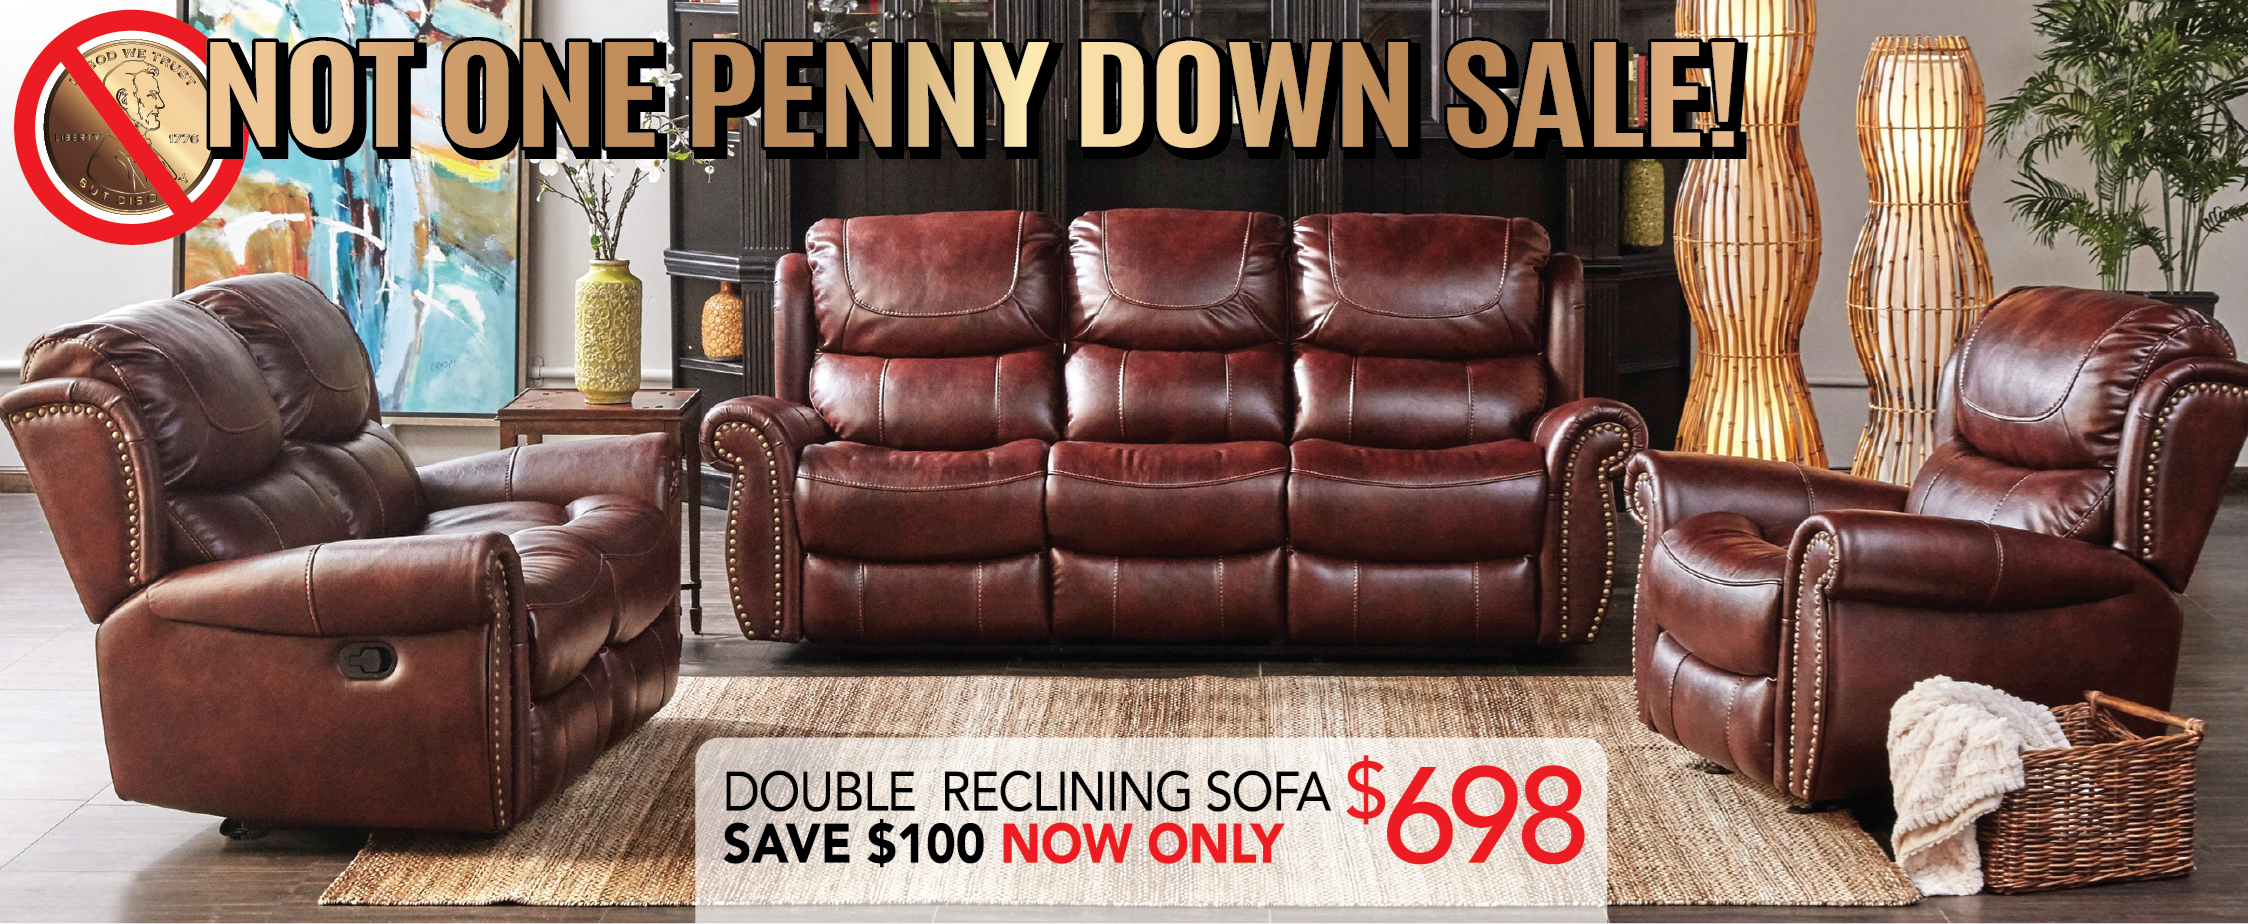 NOT ONE PENNY DOWN SALE